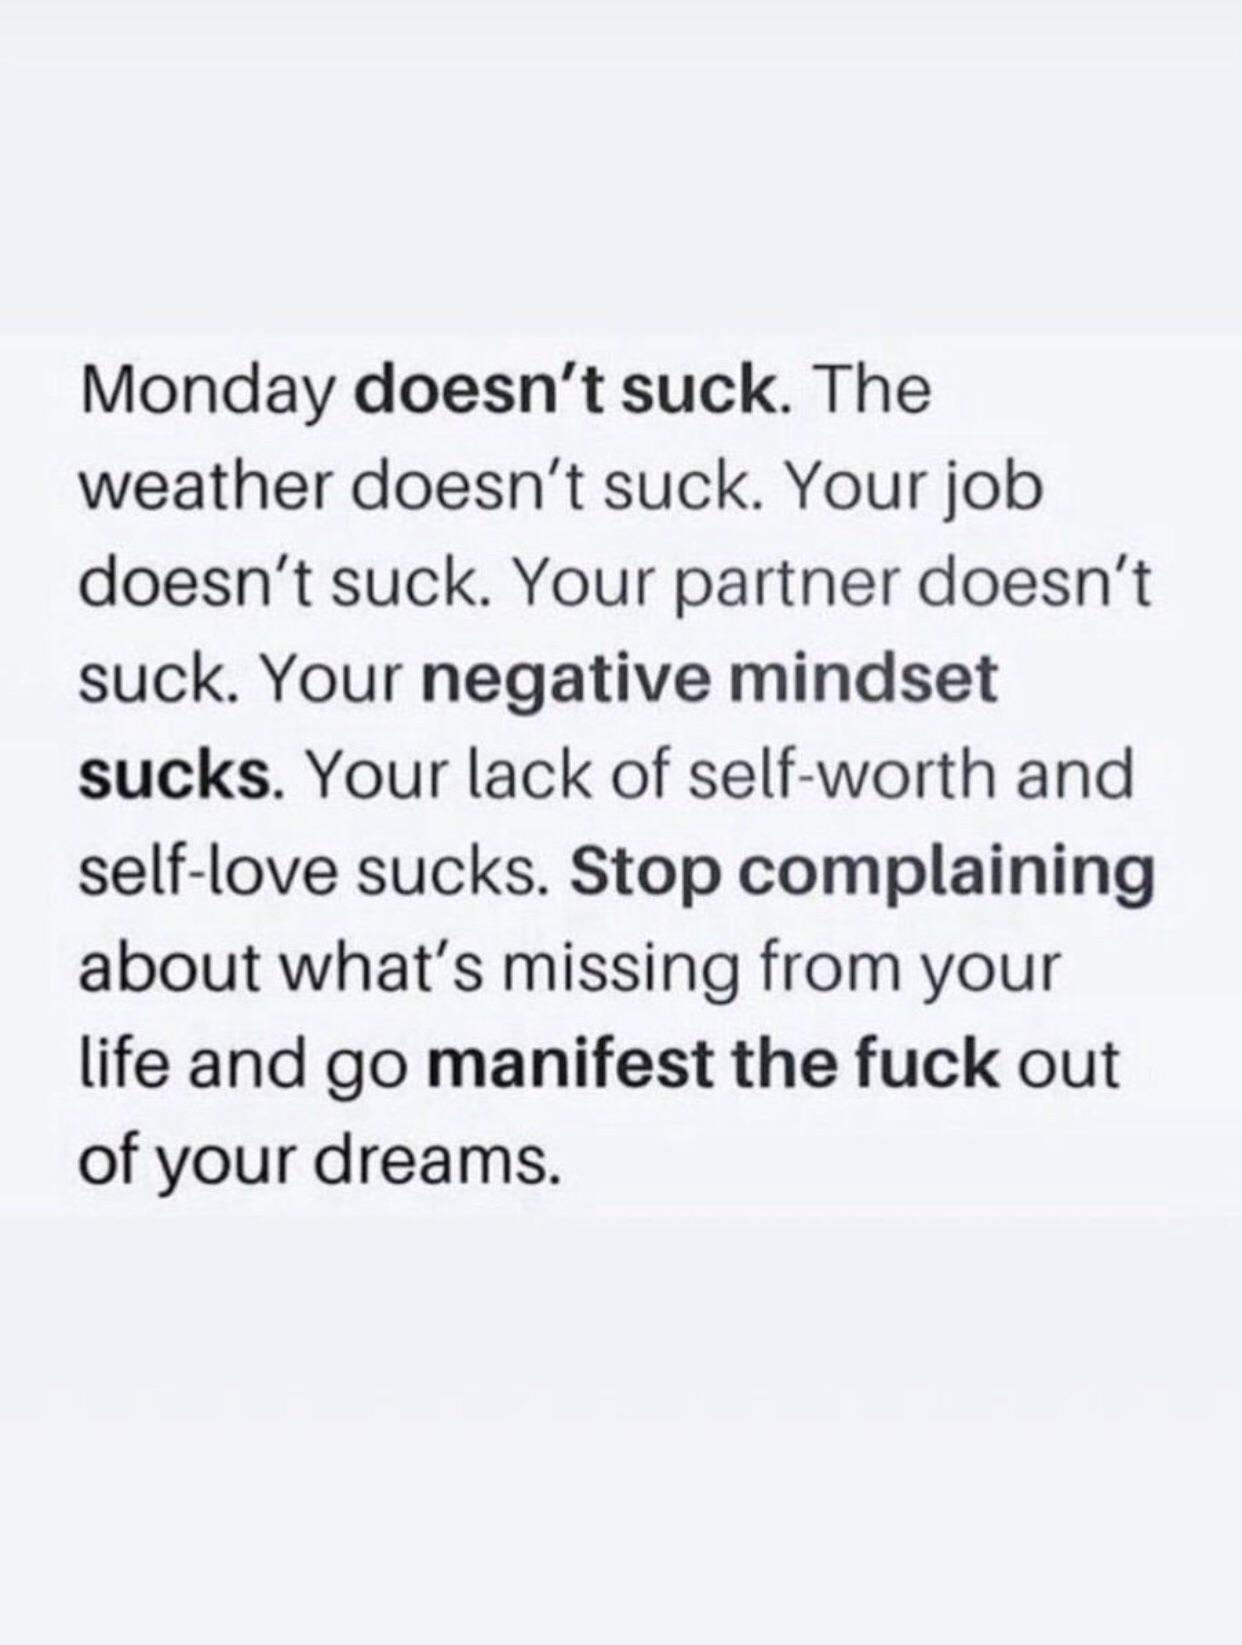 [Image] Found on Twitter, felt it was needed on a Monday.